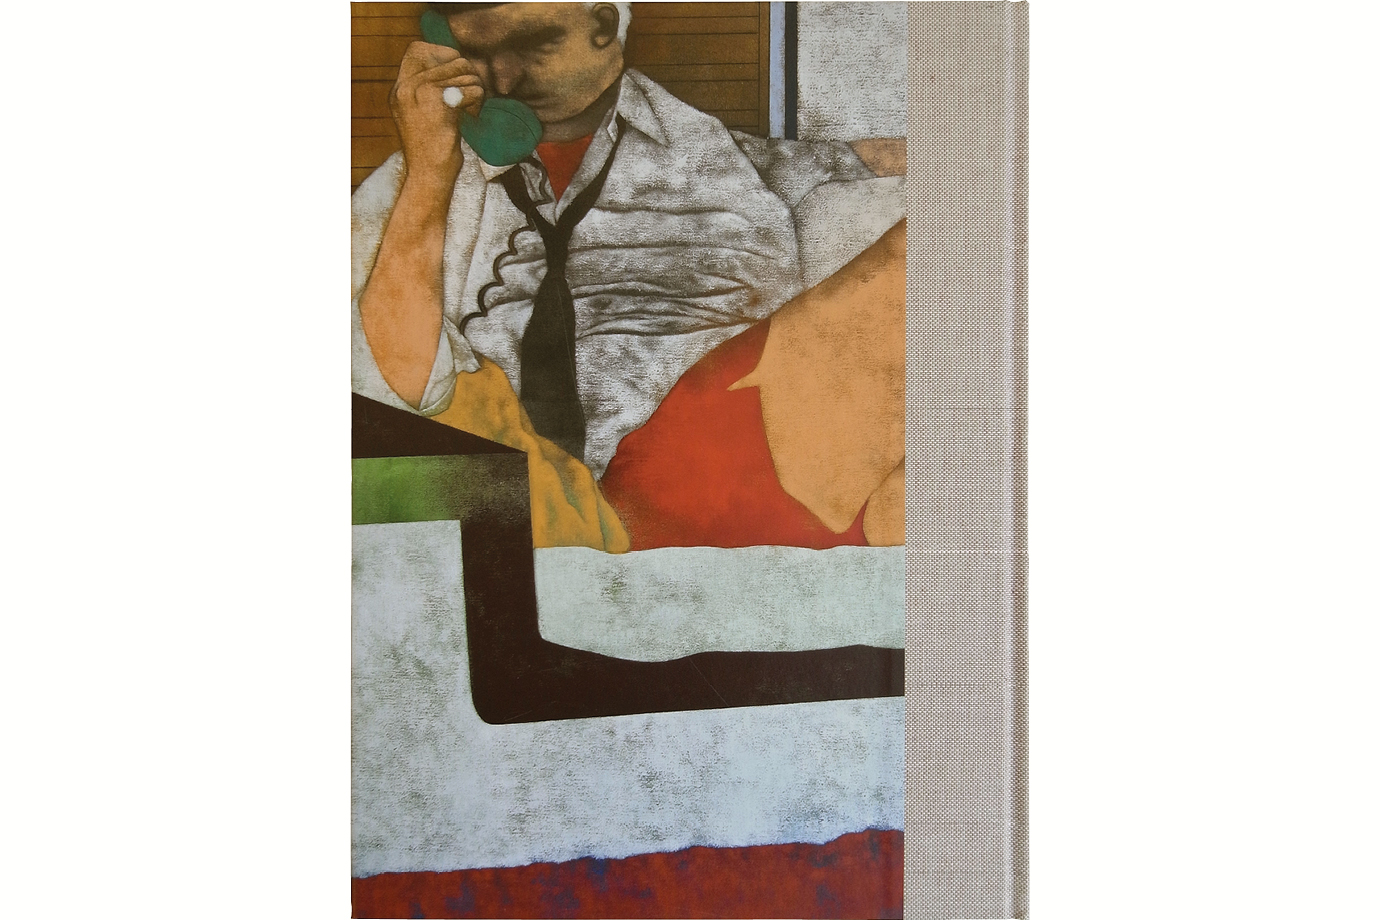 http://e-o-t.de/wordpress/wp-content/uploads/2017/07/eot-2012-Kitaj-Book-28.jpg